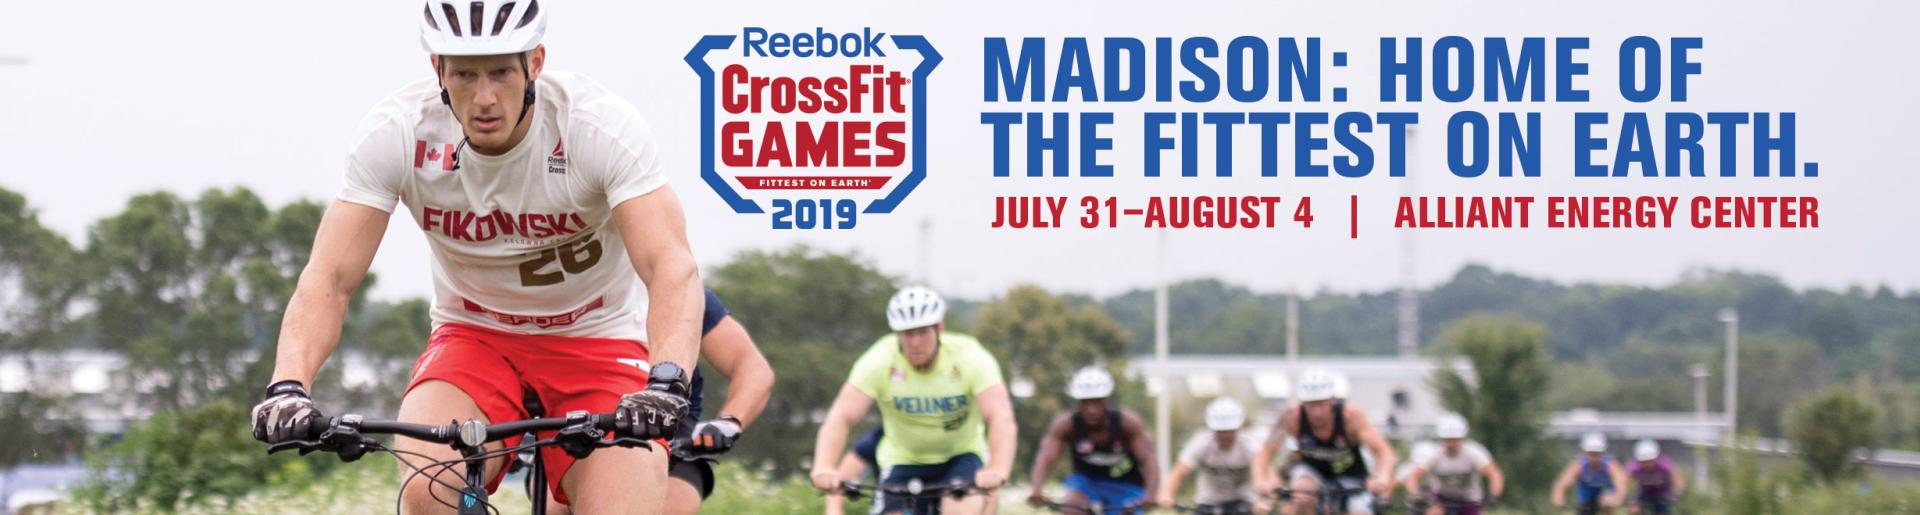 The Fittest City Welcomes The Fittest On Earth 2018 Crossfit Games